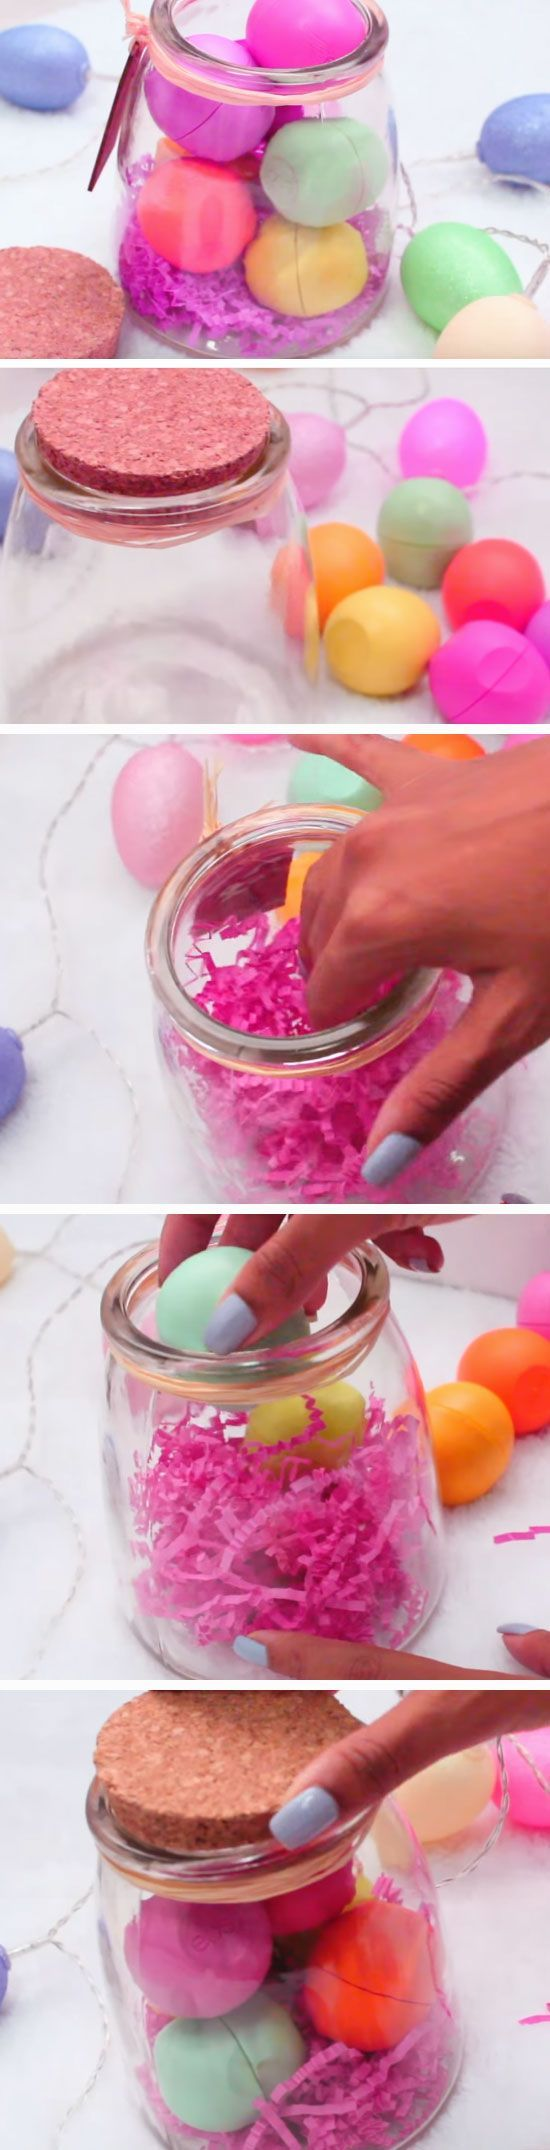 The 25 best diy easter gifts for friends ideas on pinterest 17 diy easter gift ideas for friends negle Images